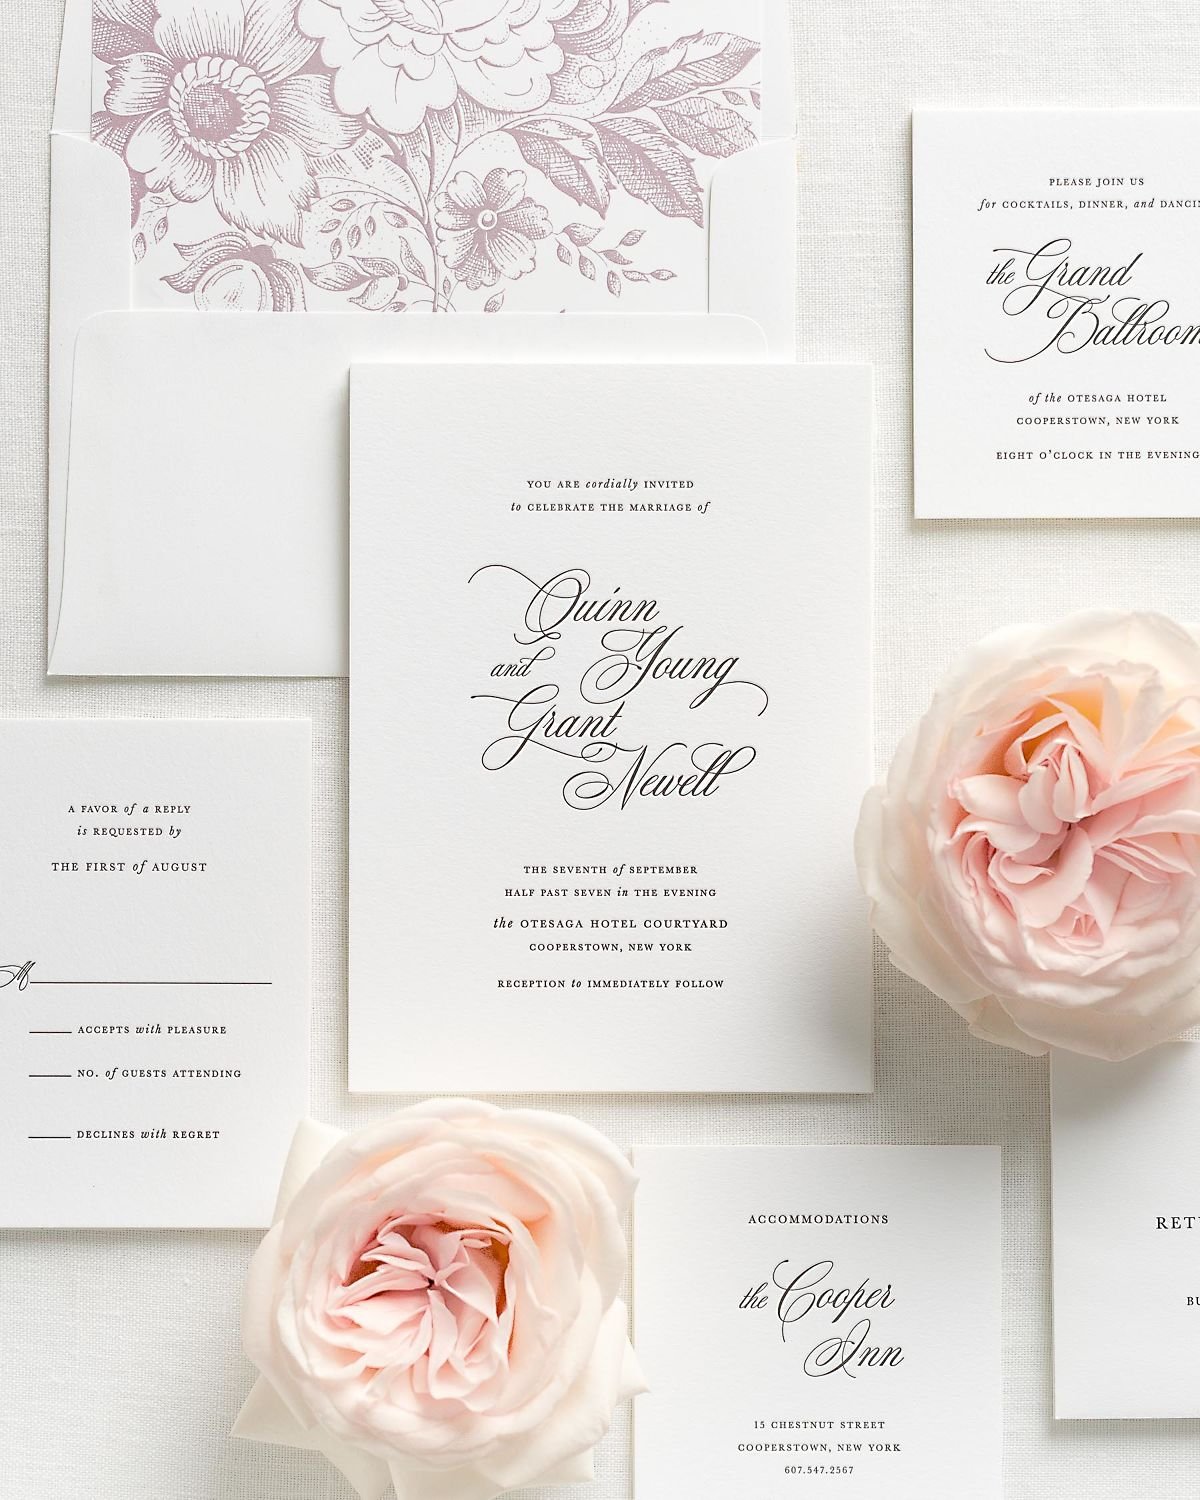 Letterpress Wedding Invitations with Mauve Garden Rose Envelope Liner and Matching Accessories